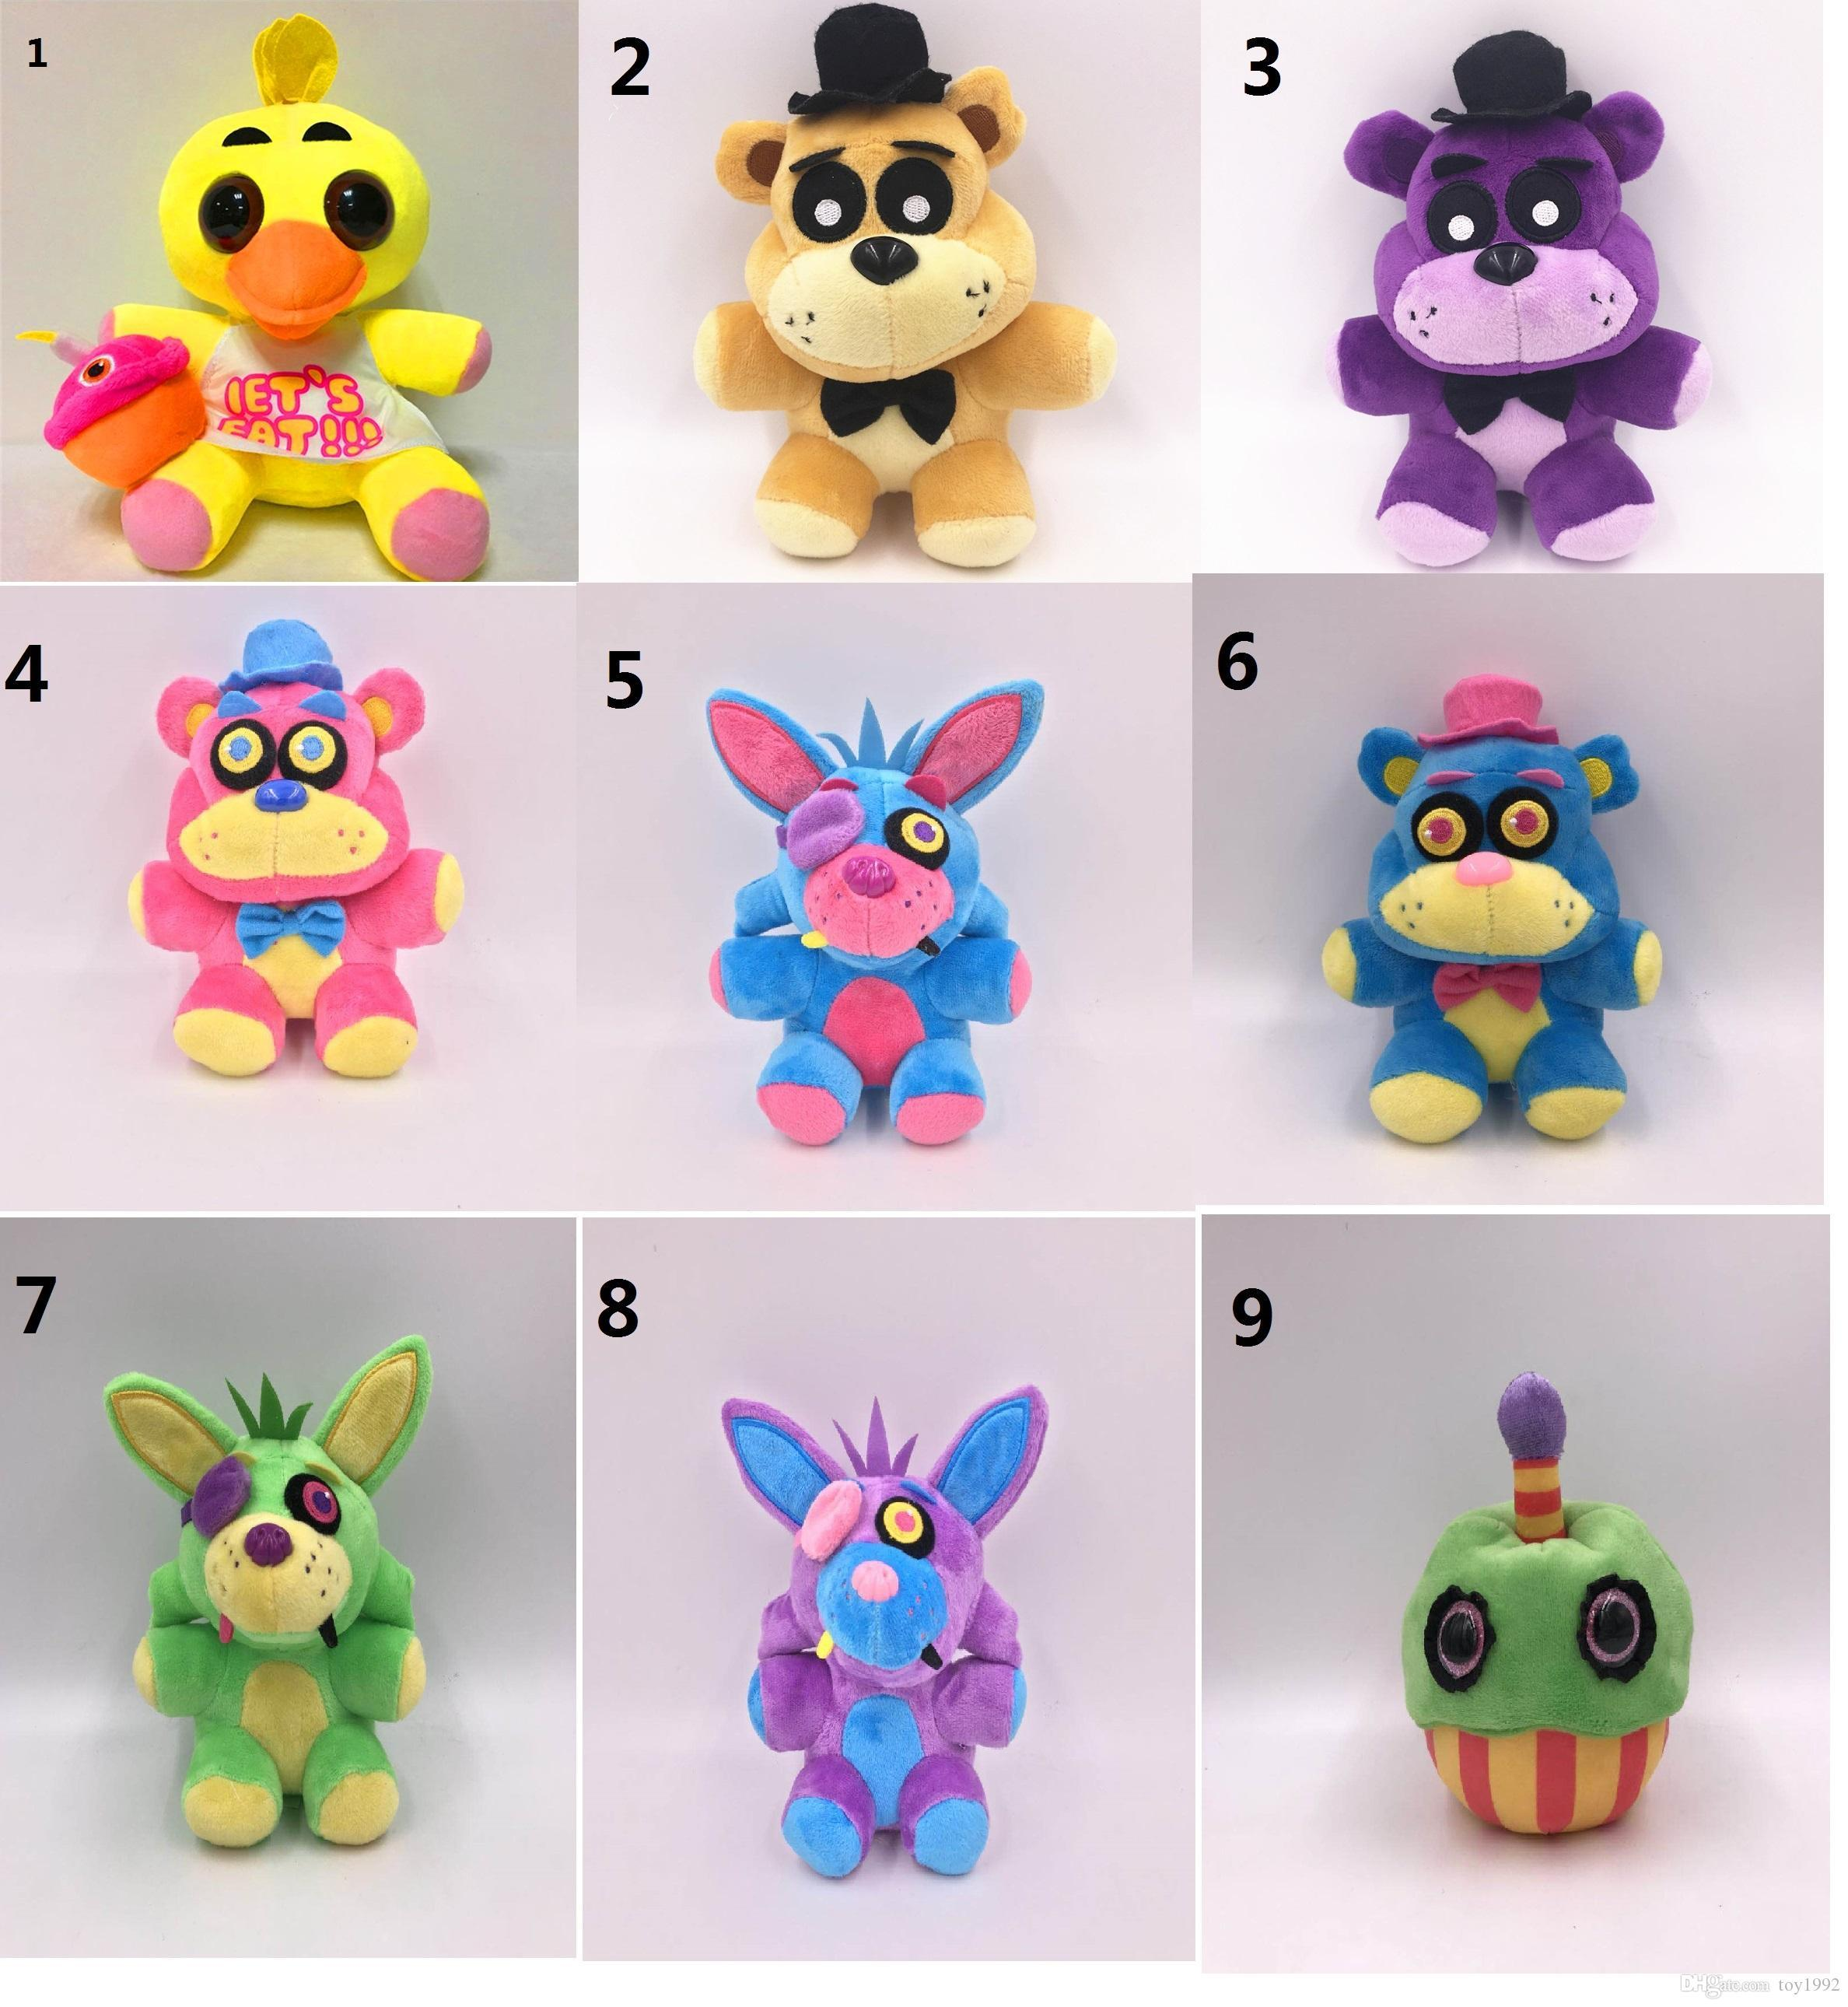 New 18cm-25cm Five Nights at Freddy's cute little bear midnight harem wall hanging plush toy decoration children's toys gifts 66